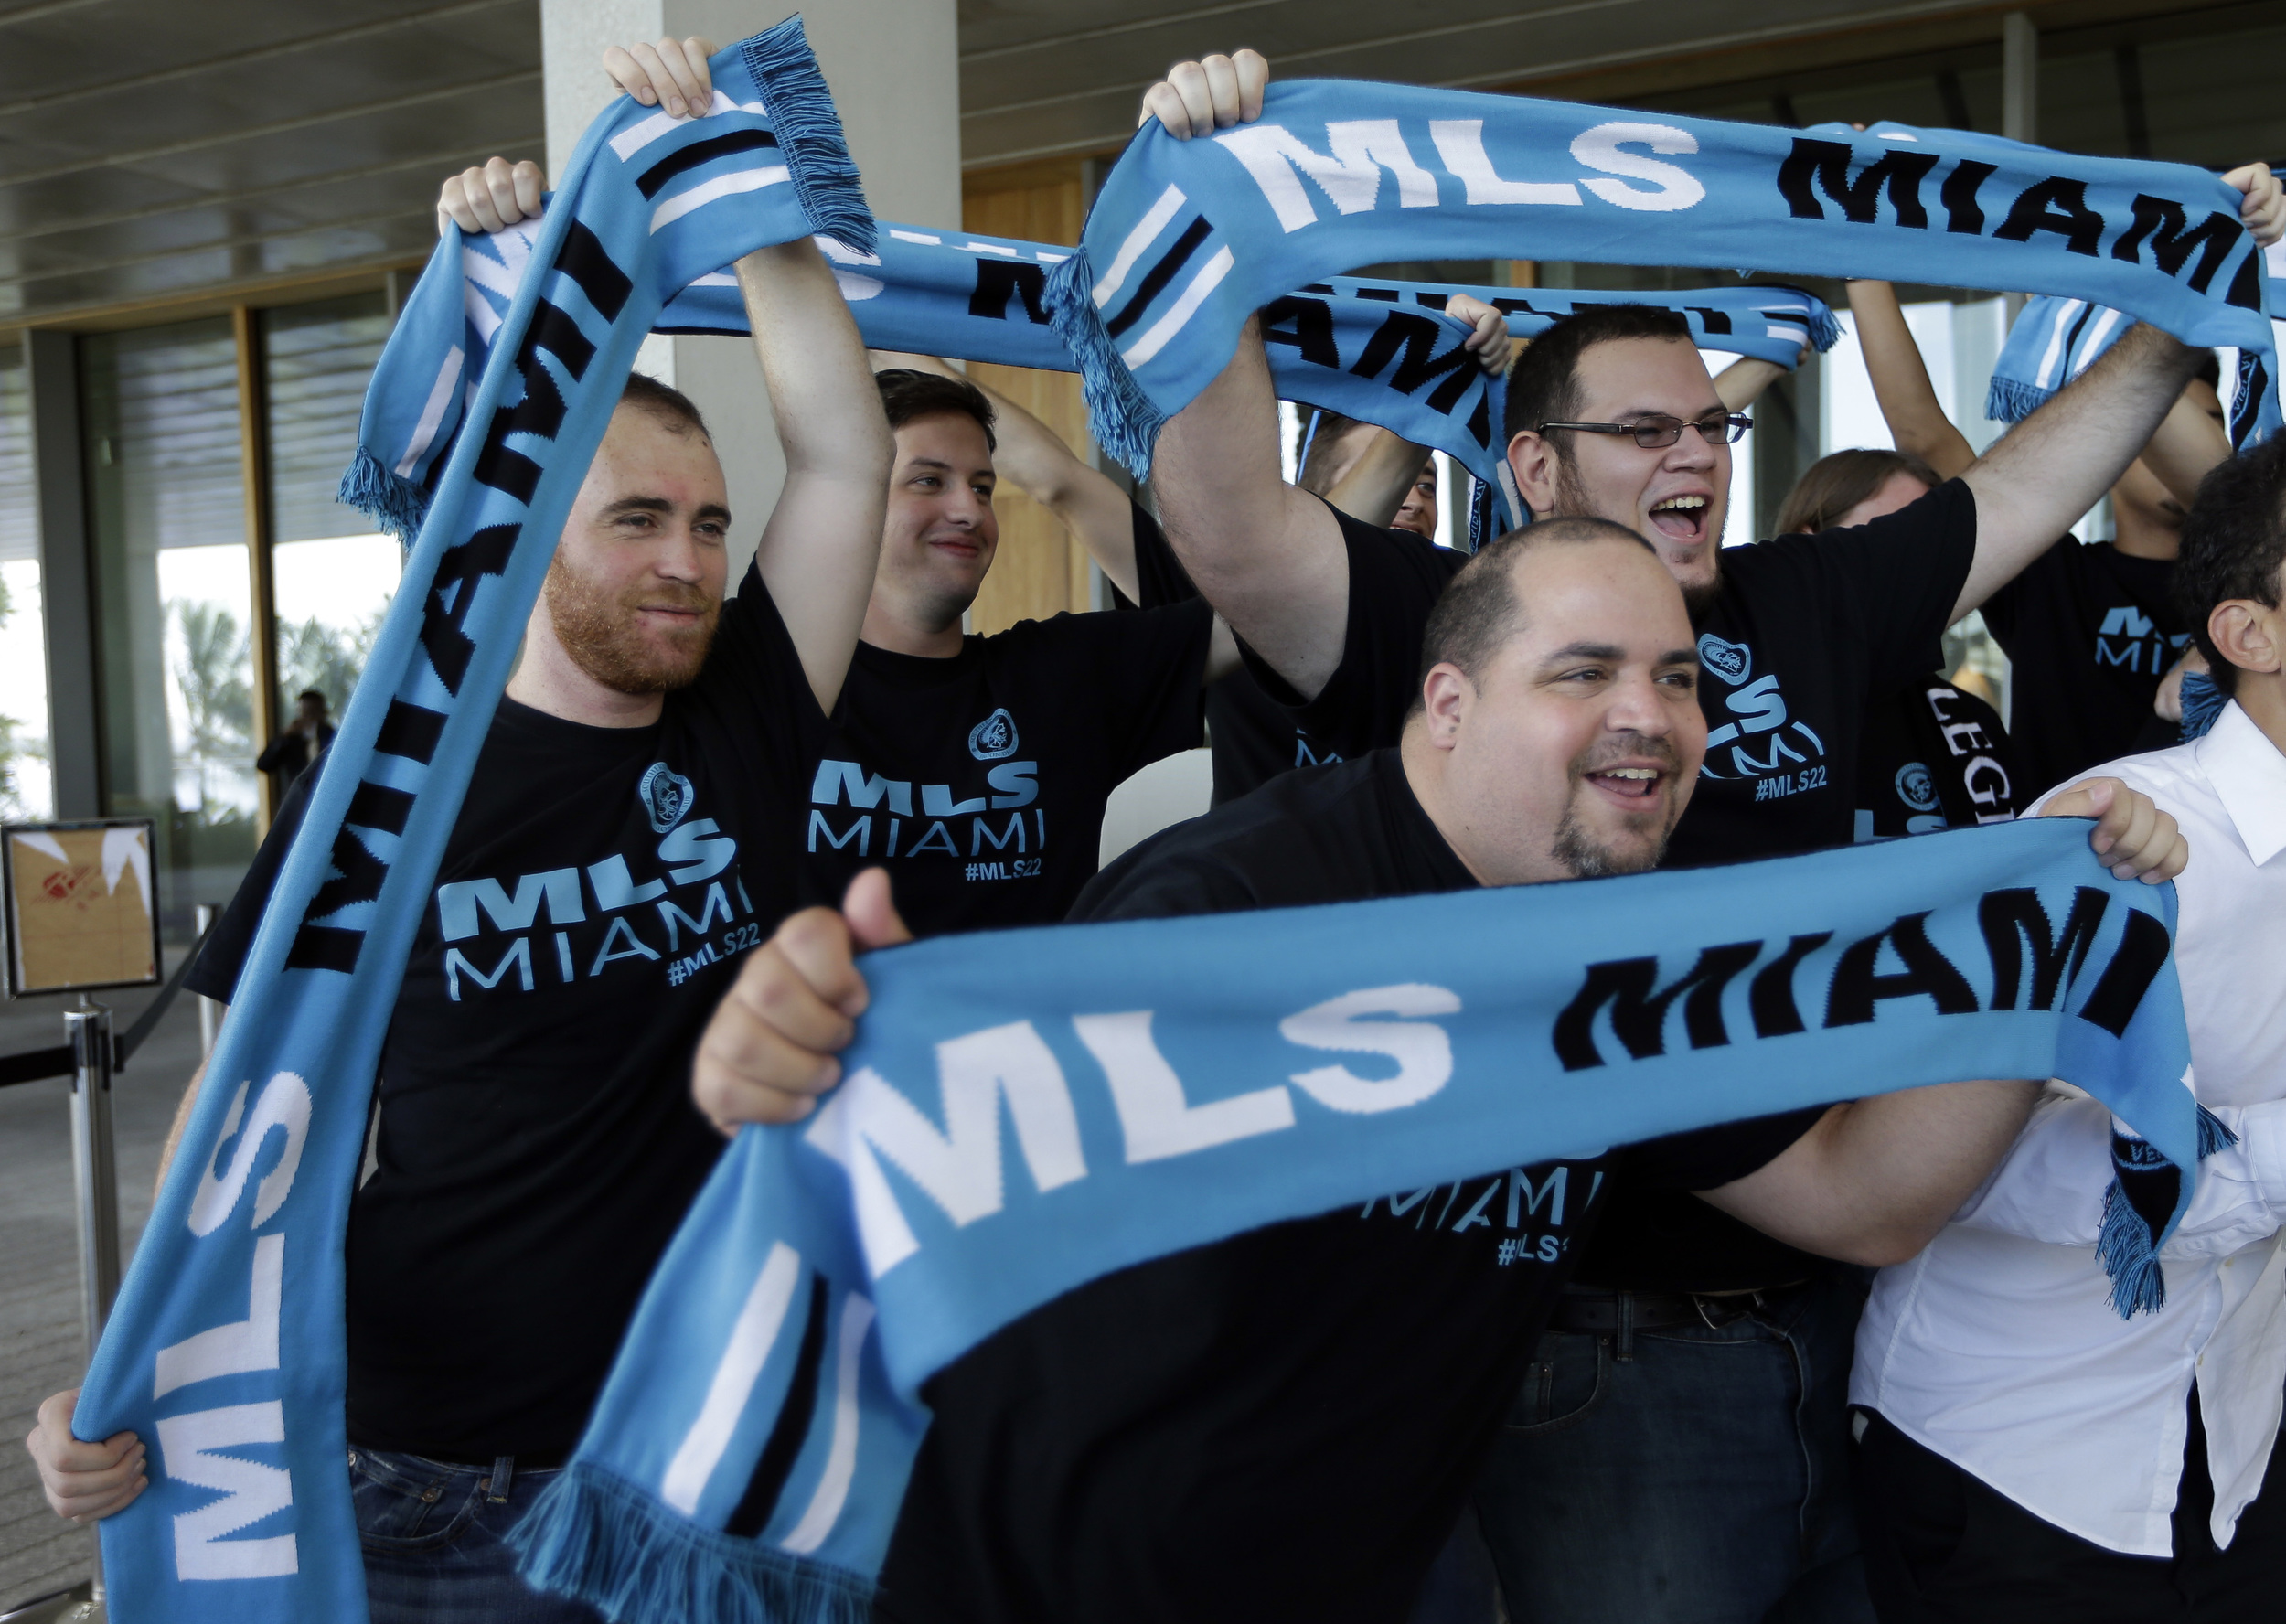 Promotion still with paid models? MLS to MIAMI Coming .... um... at some point.